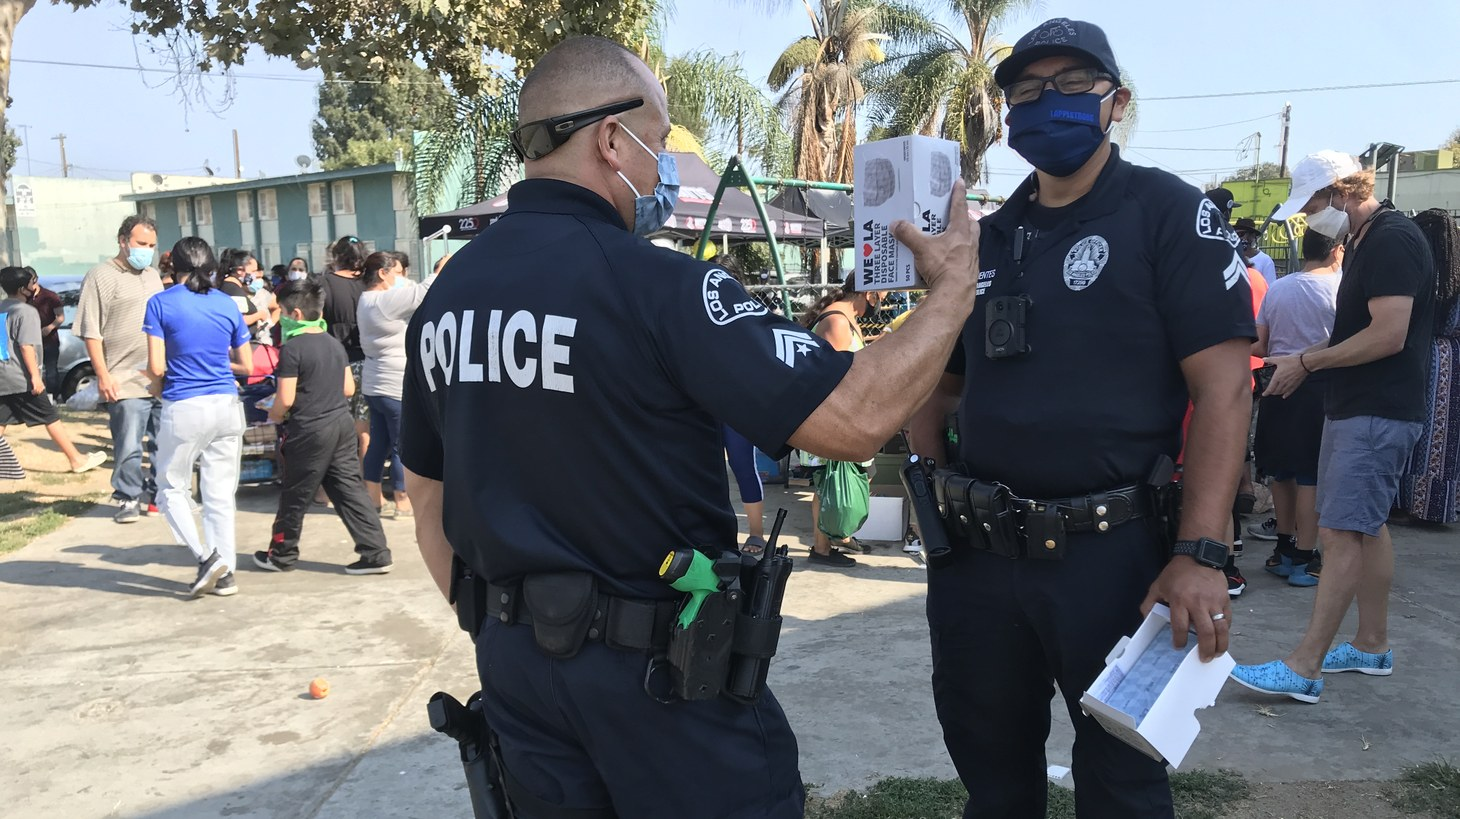 Two Community Safety Partnership officers stand watch as volunteers pass out school supplies at Watts Empowerment, a community center in the middle of the Imperial Courts housing project in Watts.